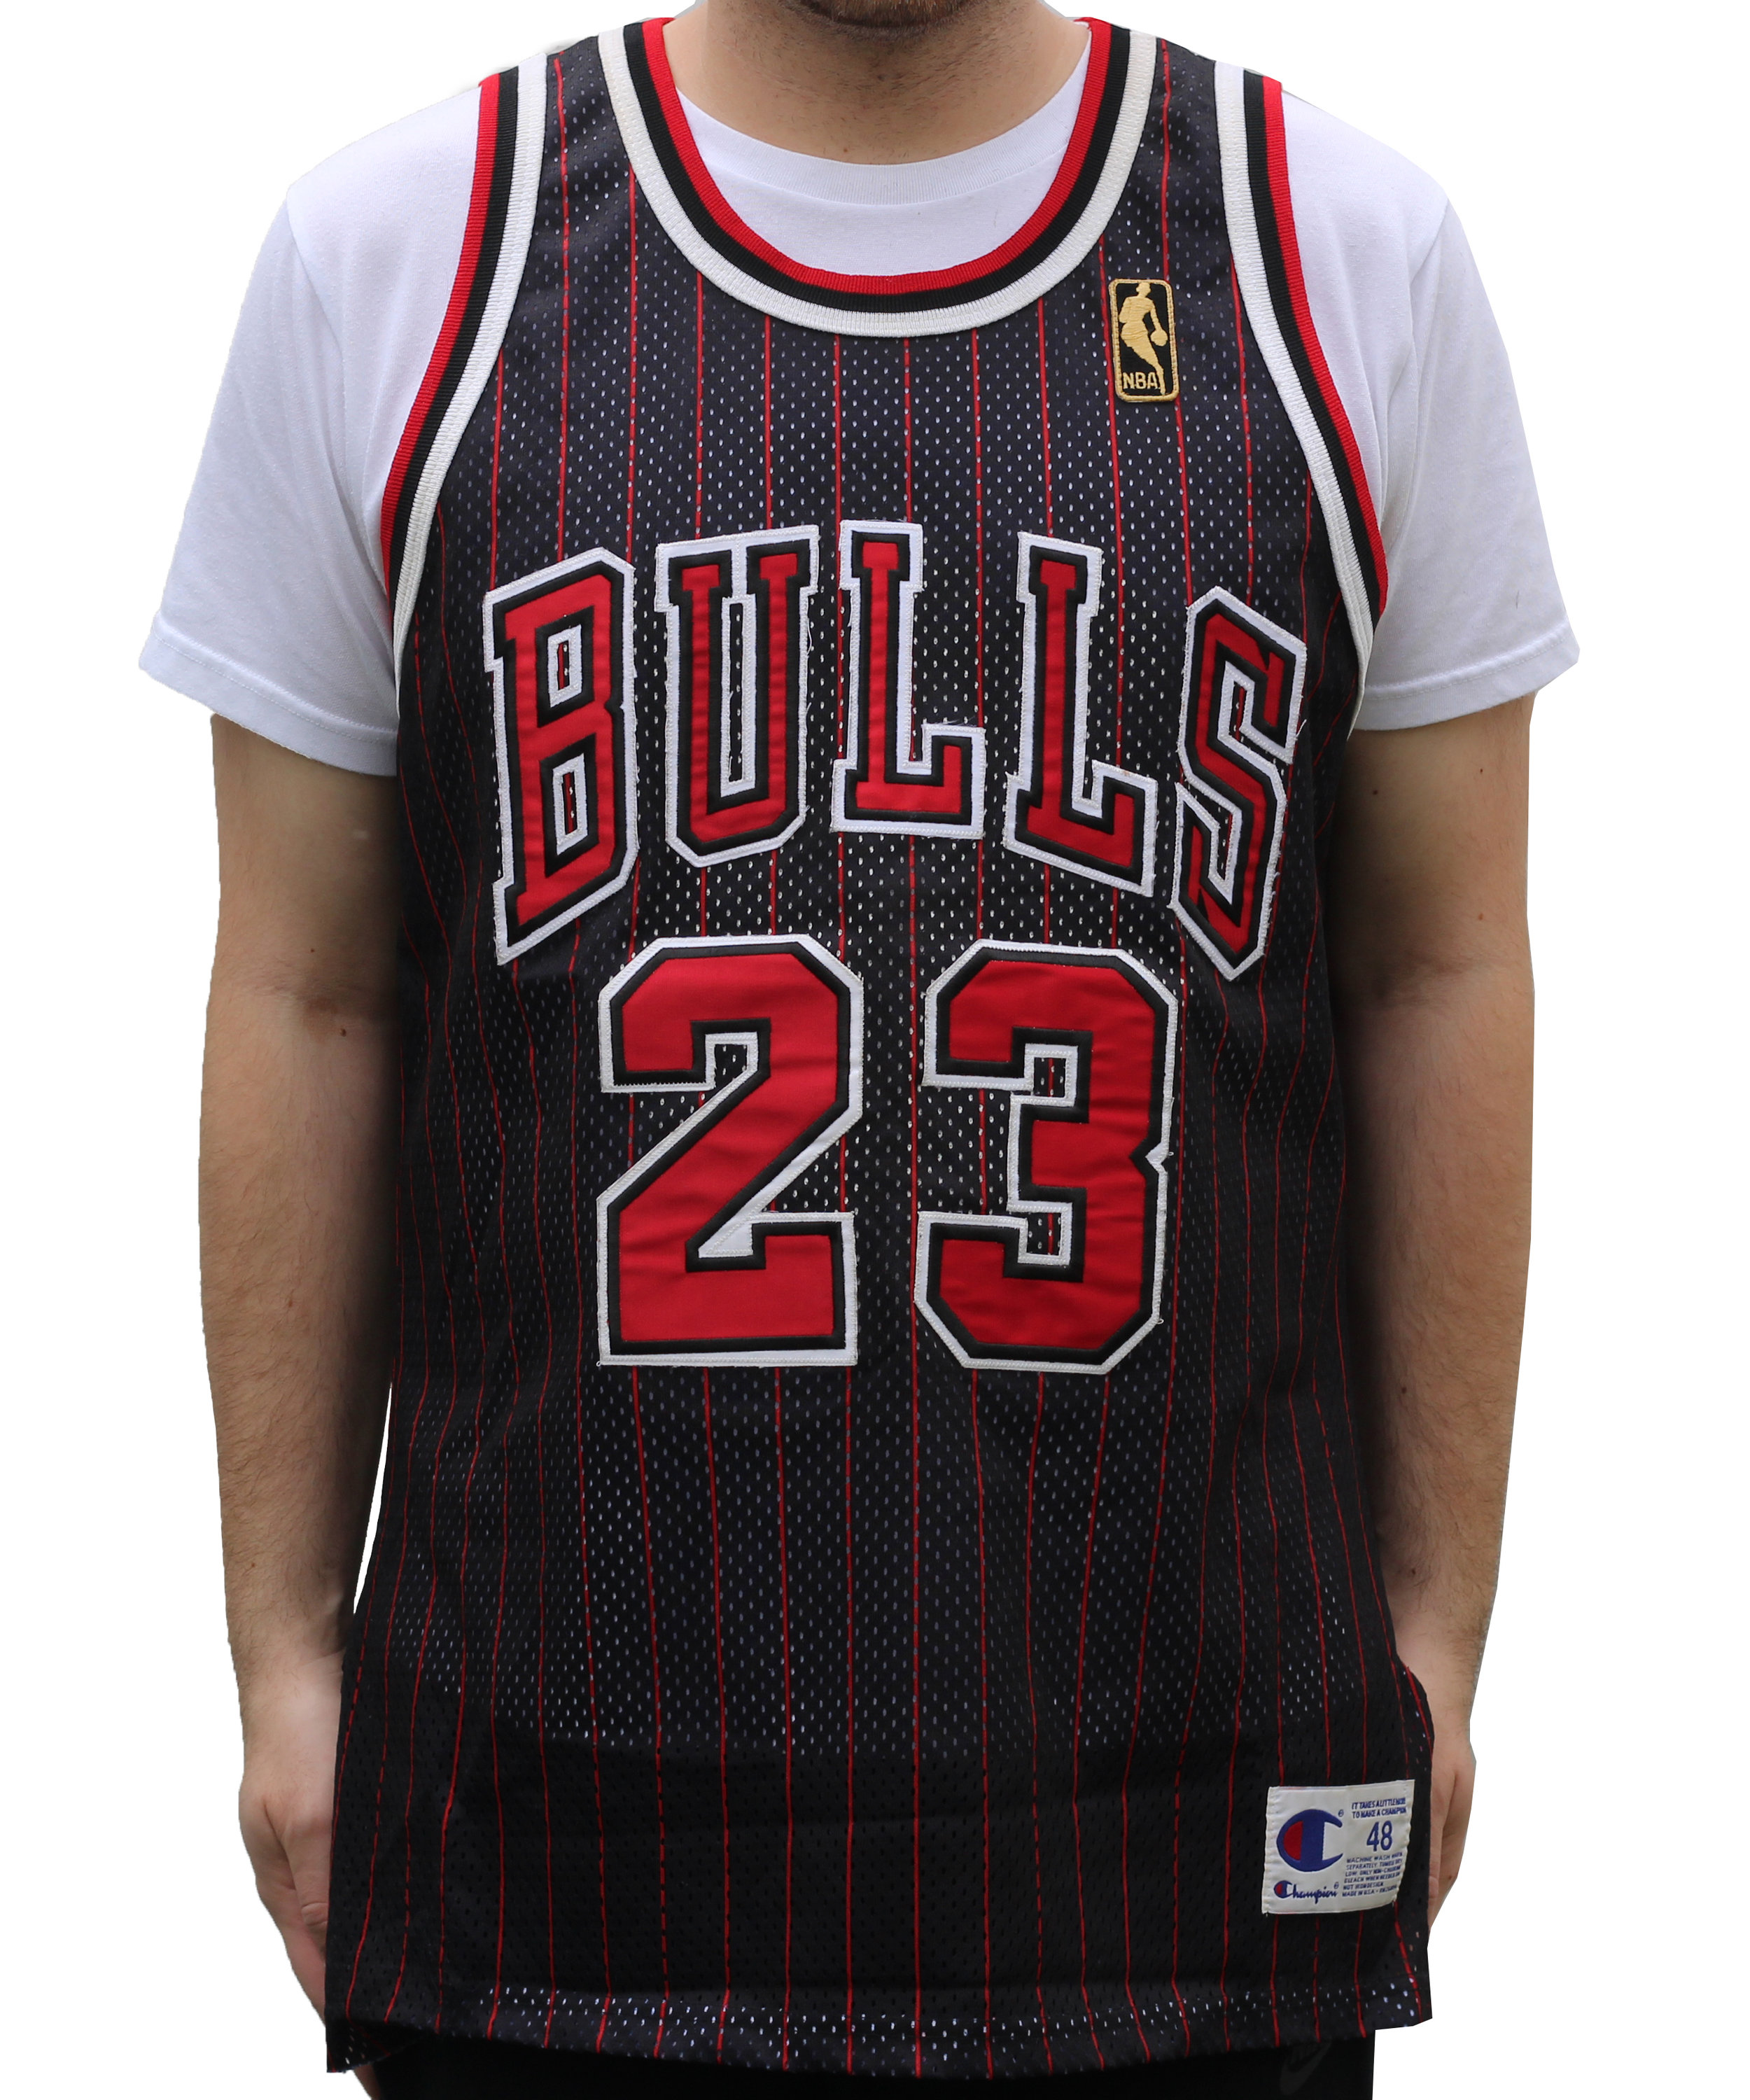 new product 62ced be9b8 Vintage Champion Chicago Bulls Pinstripe Jordan Authentic Anniversary  Jersey (Size 48) — Roots